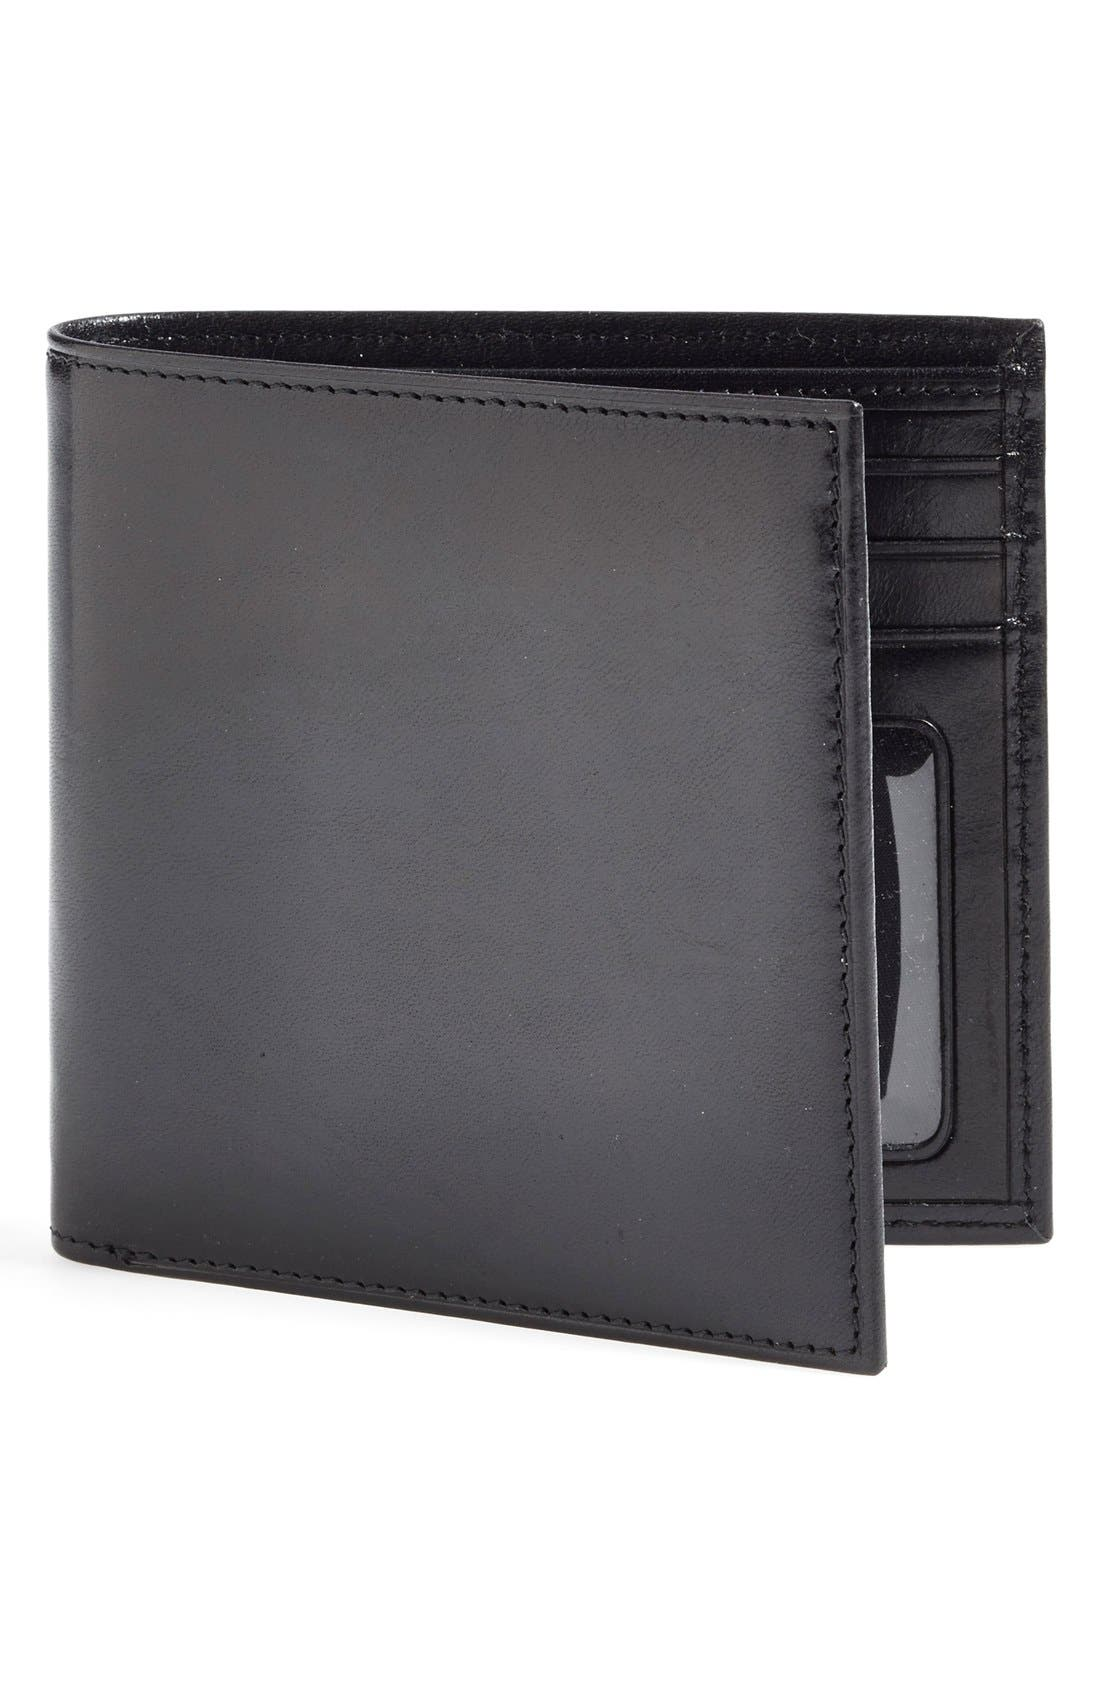 'Old Leather' Bifold Wallet,                         Main,                         color, 001